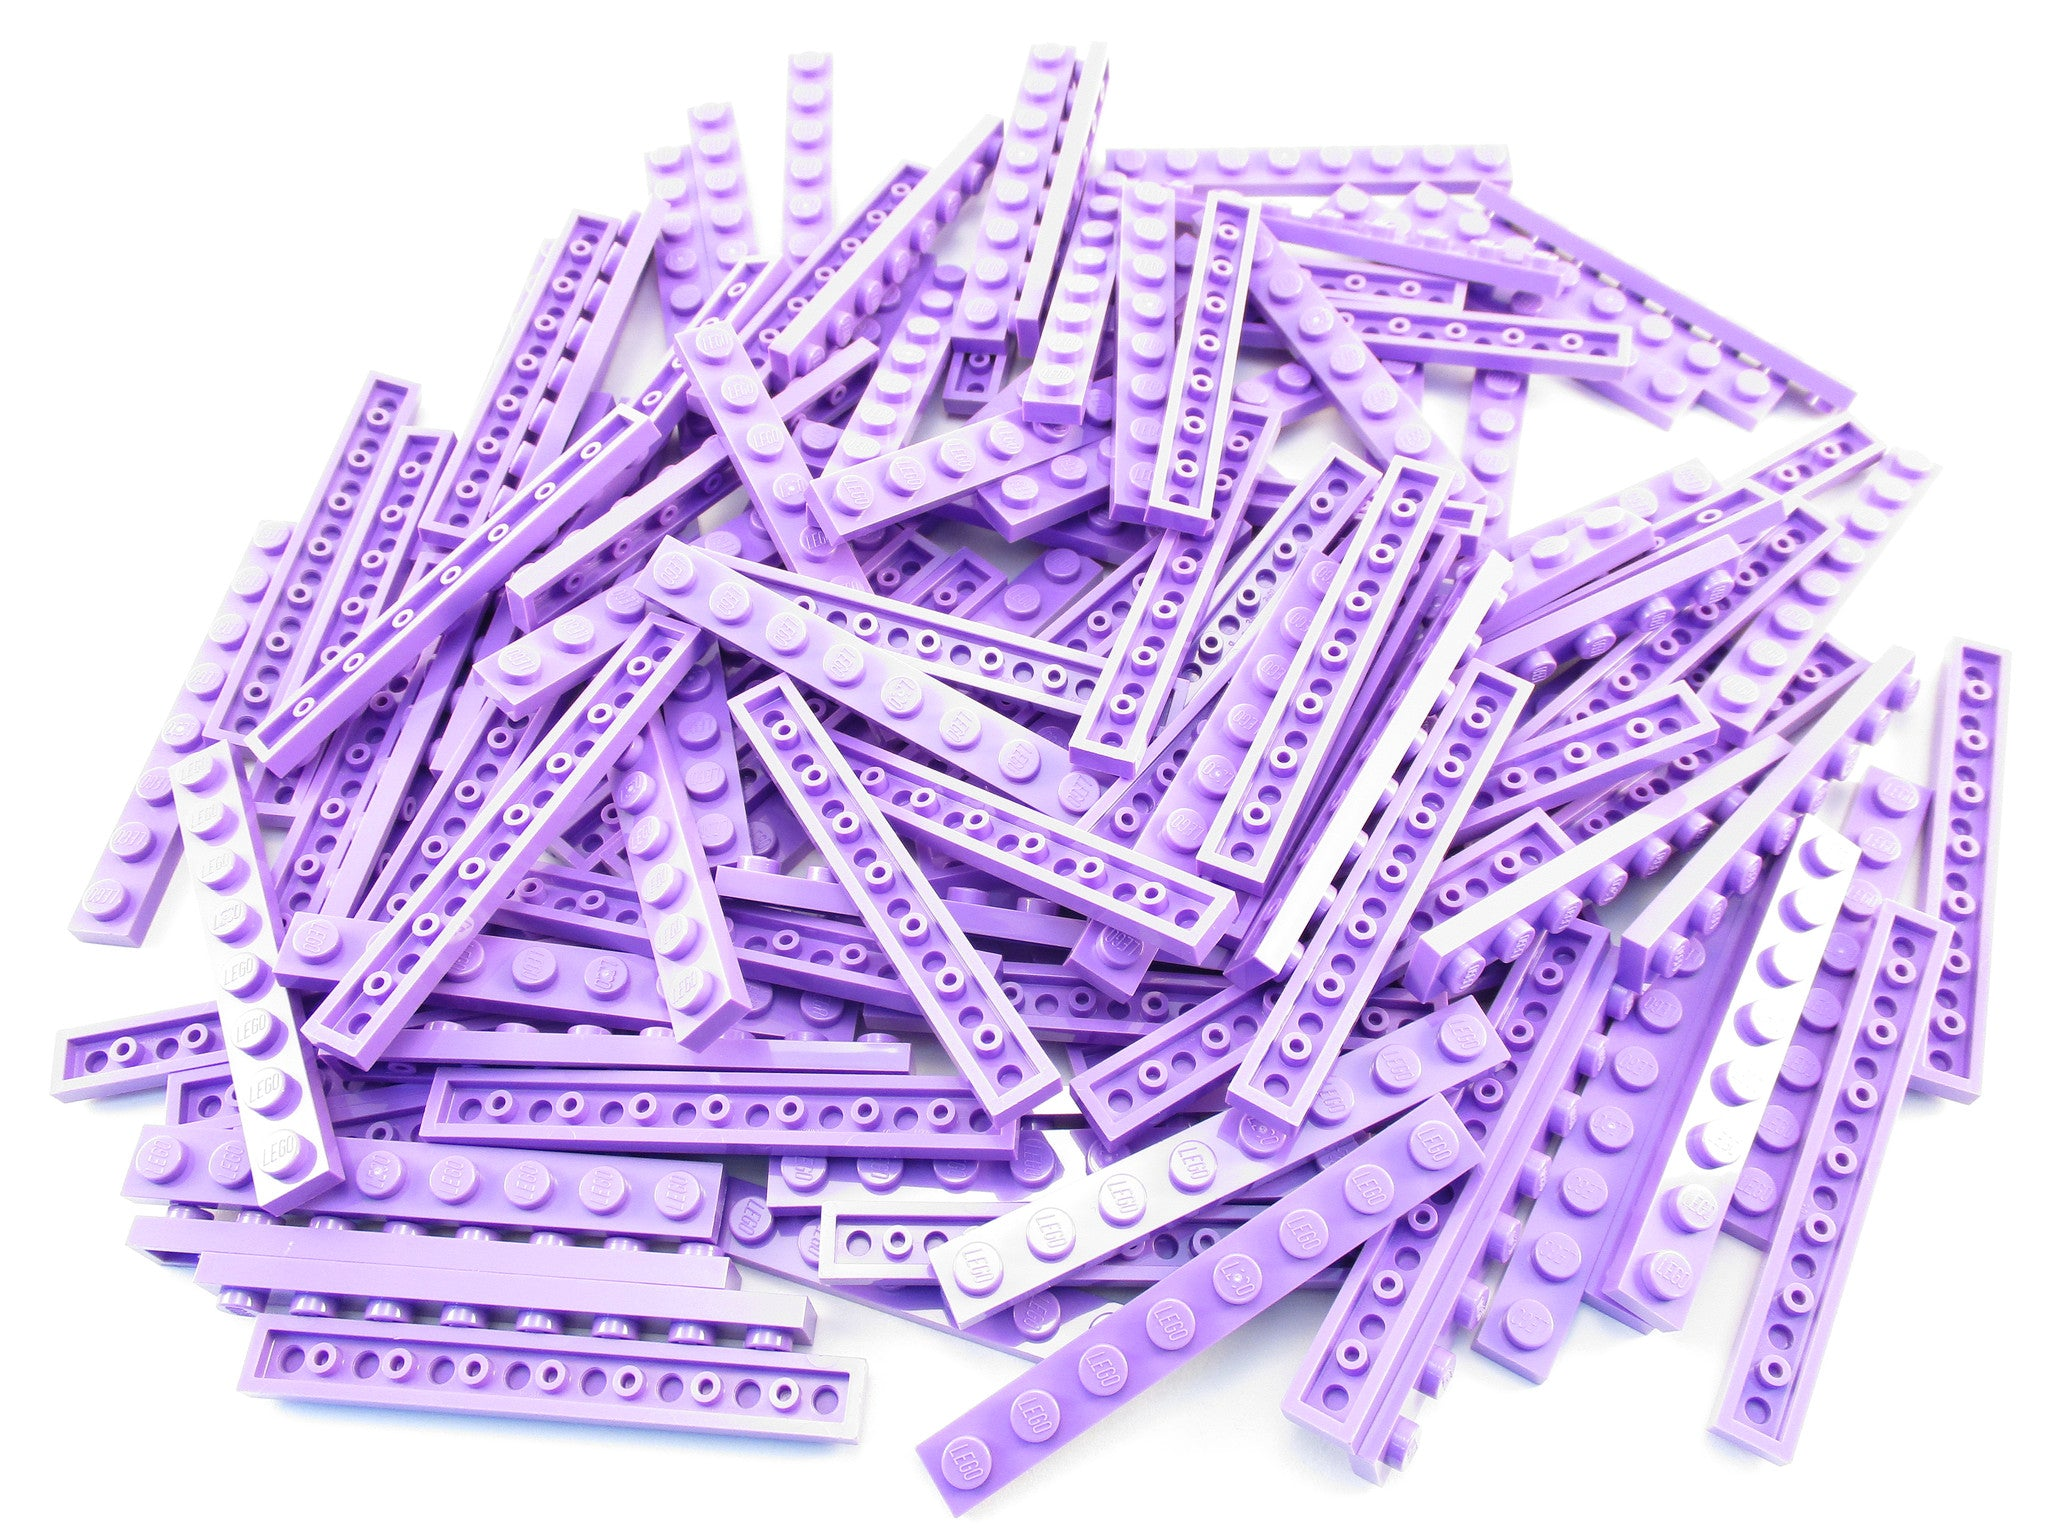 LEGO Medium Lavender Plate 1x8 Lot of 50 Parts Pieces 3460